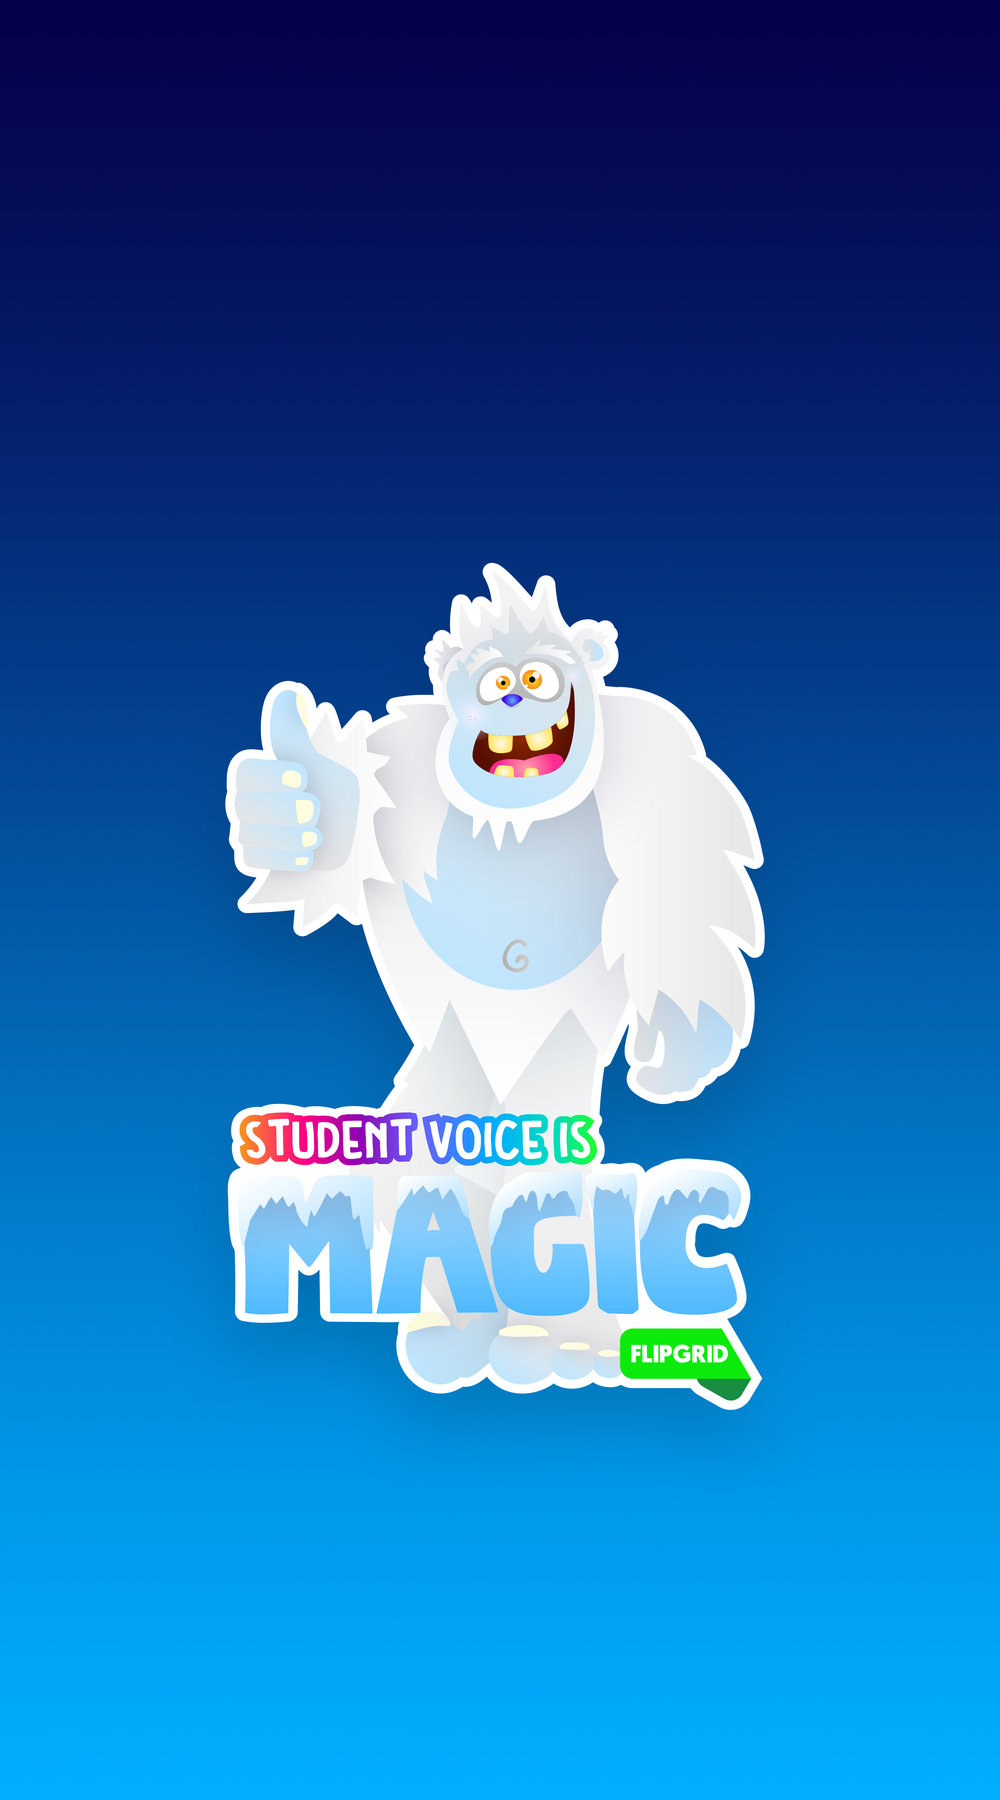 Flipgrid_Yeti_Magic_wallpaper.jpg